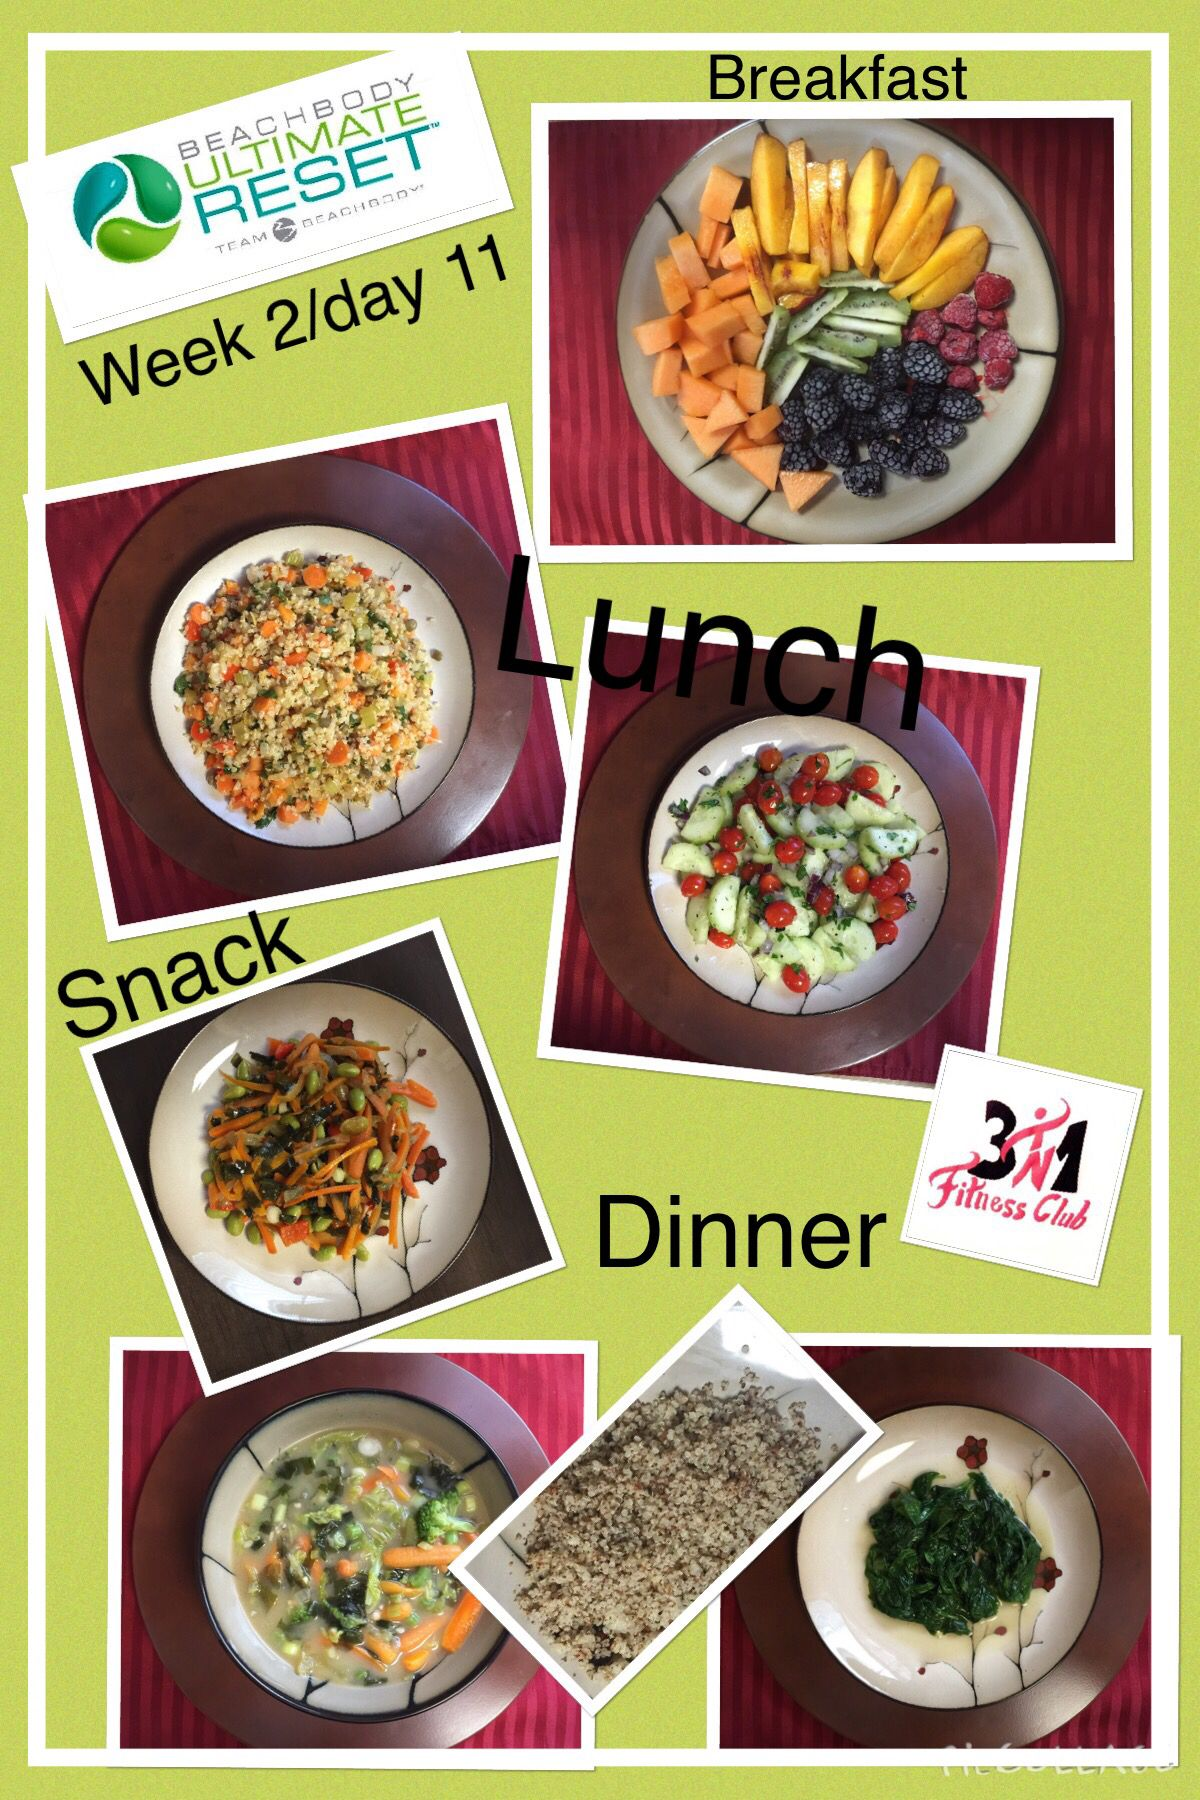 Beachbody Ultimate Reset Week 2 Day 11 With Images